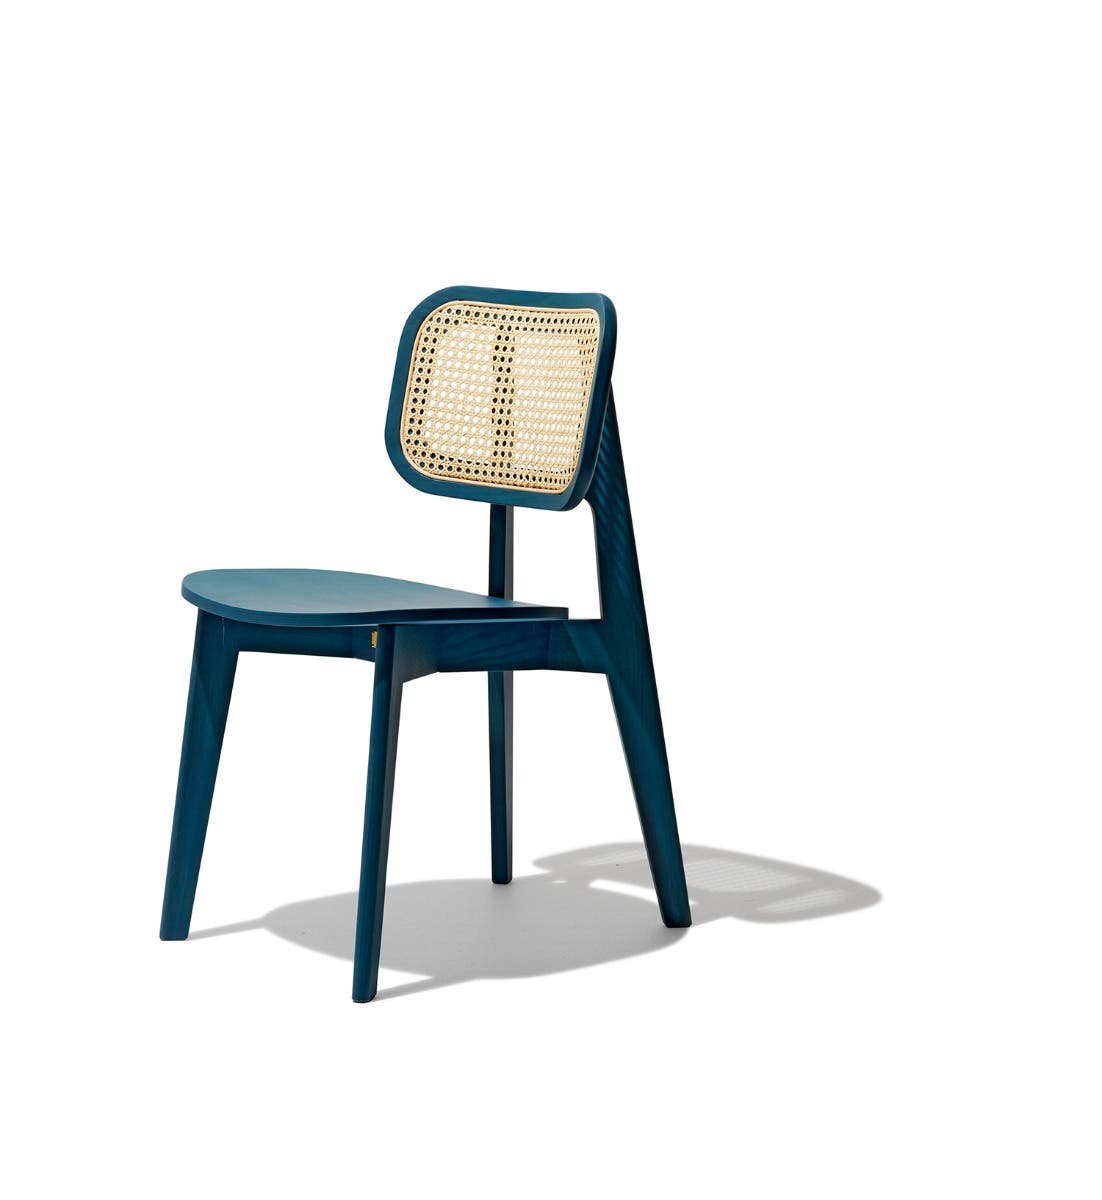 Marvelous Cane Dining Chair Ibusinesslaw Wood Chair Design Ideas Ibusinesslaworg